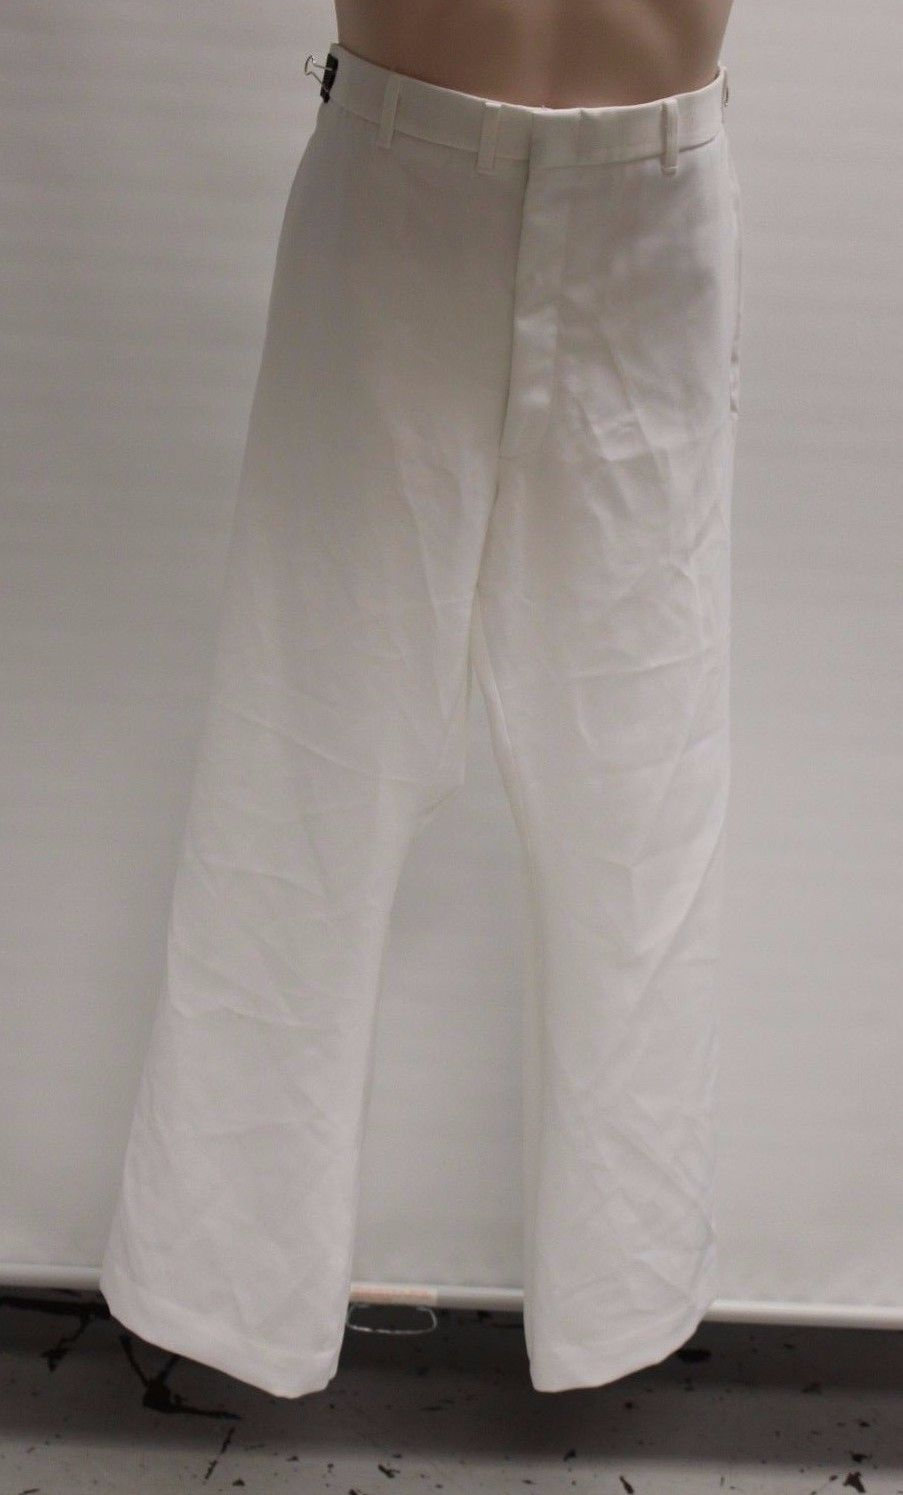 US Military Men's White Service Dress Trousers, Size: 35L, NSN 8405-01-076-0749